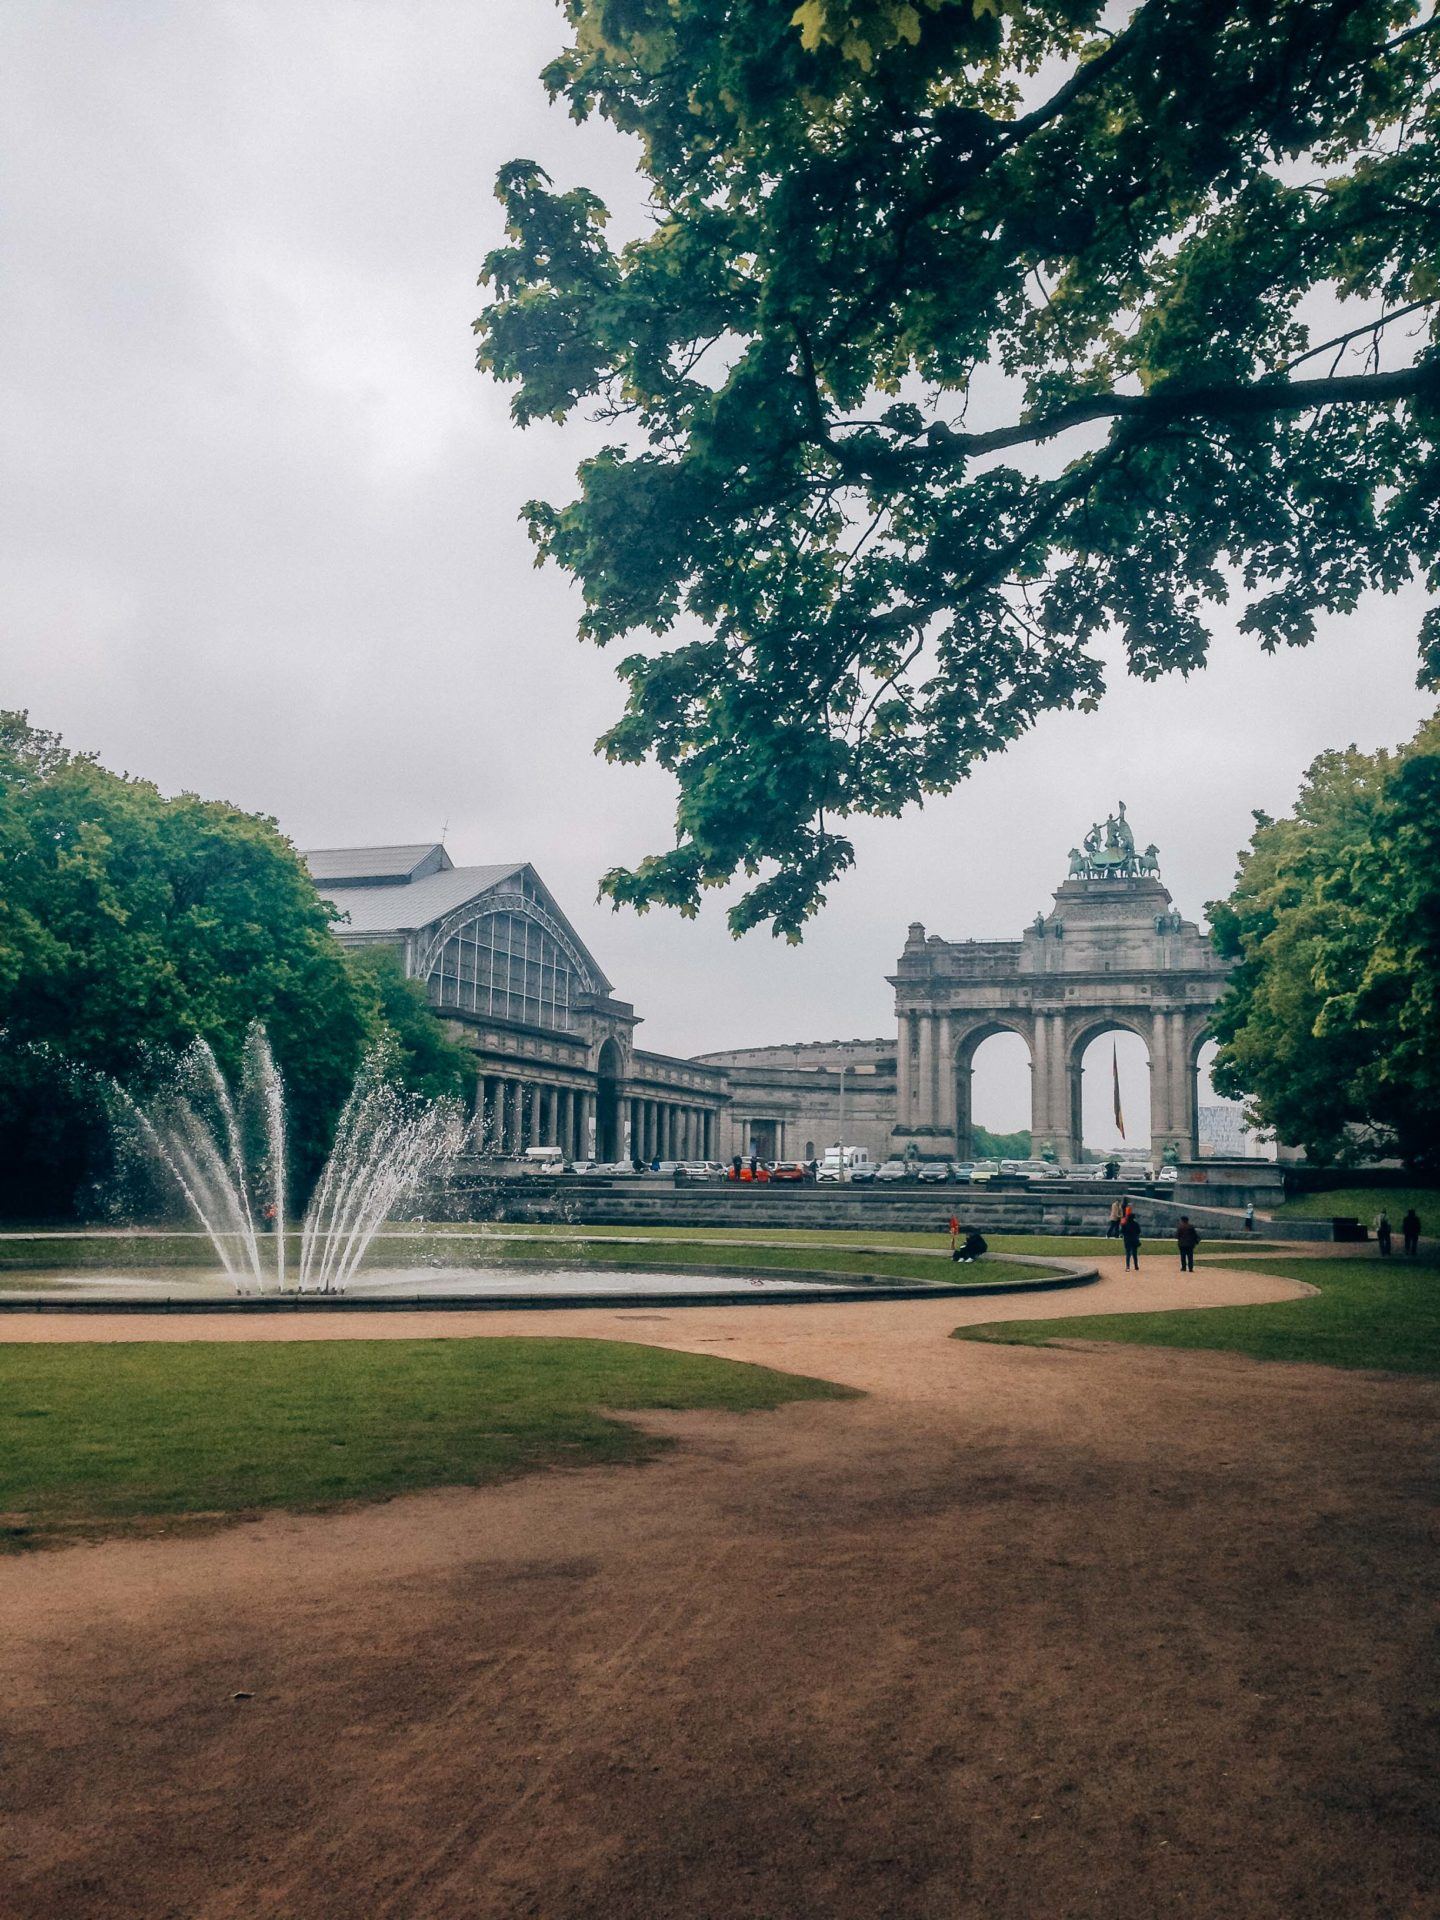 Visit the Cinquantenaire during your weekend in Brussels